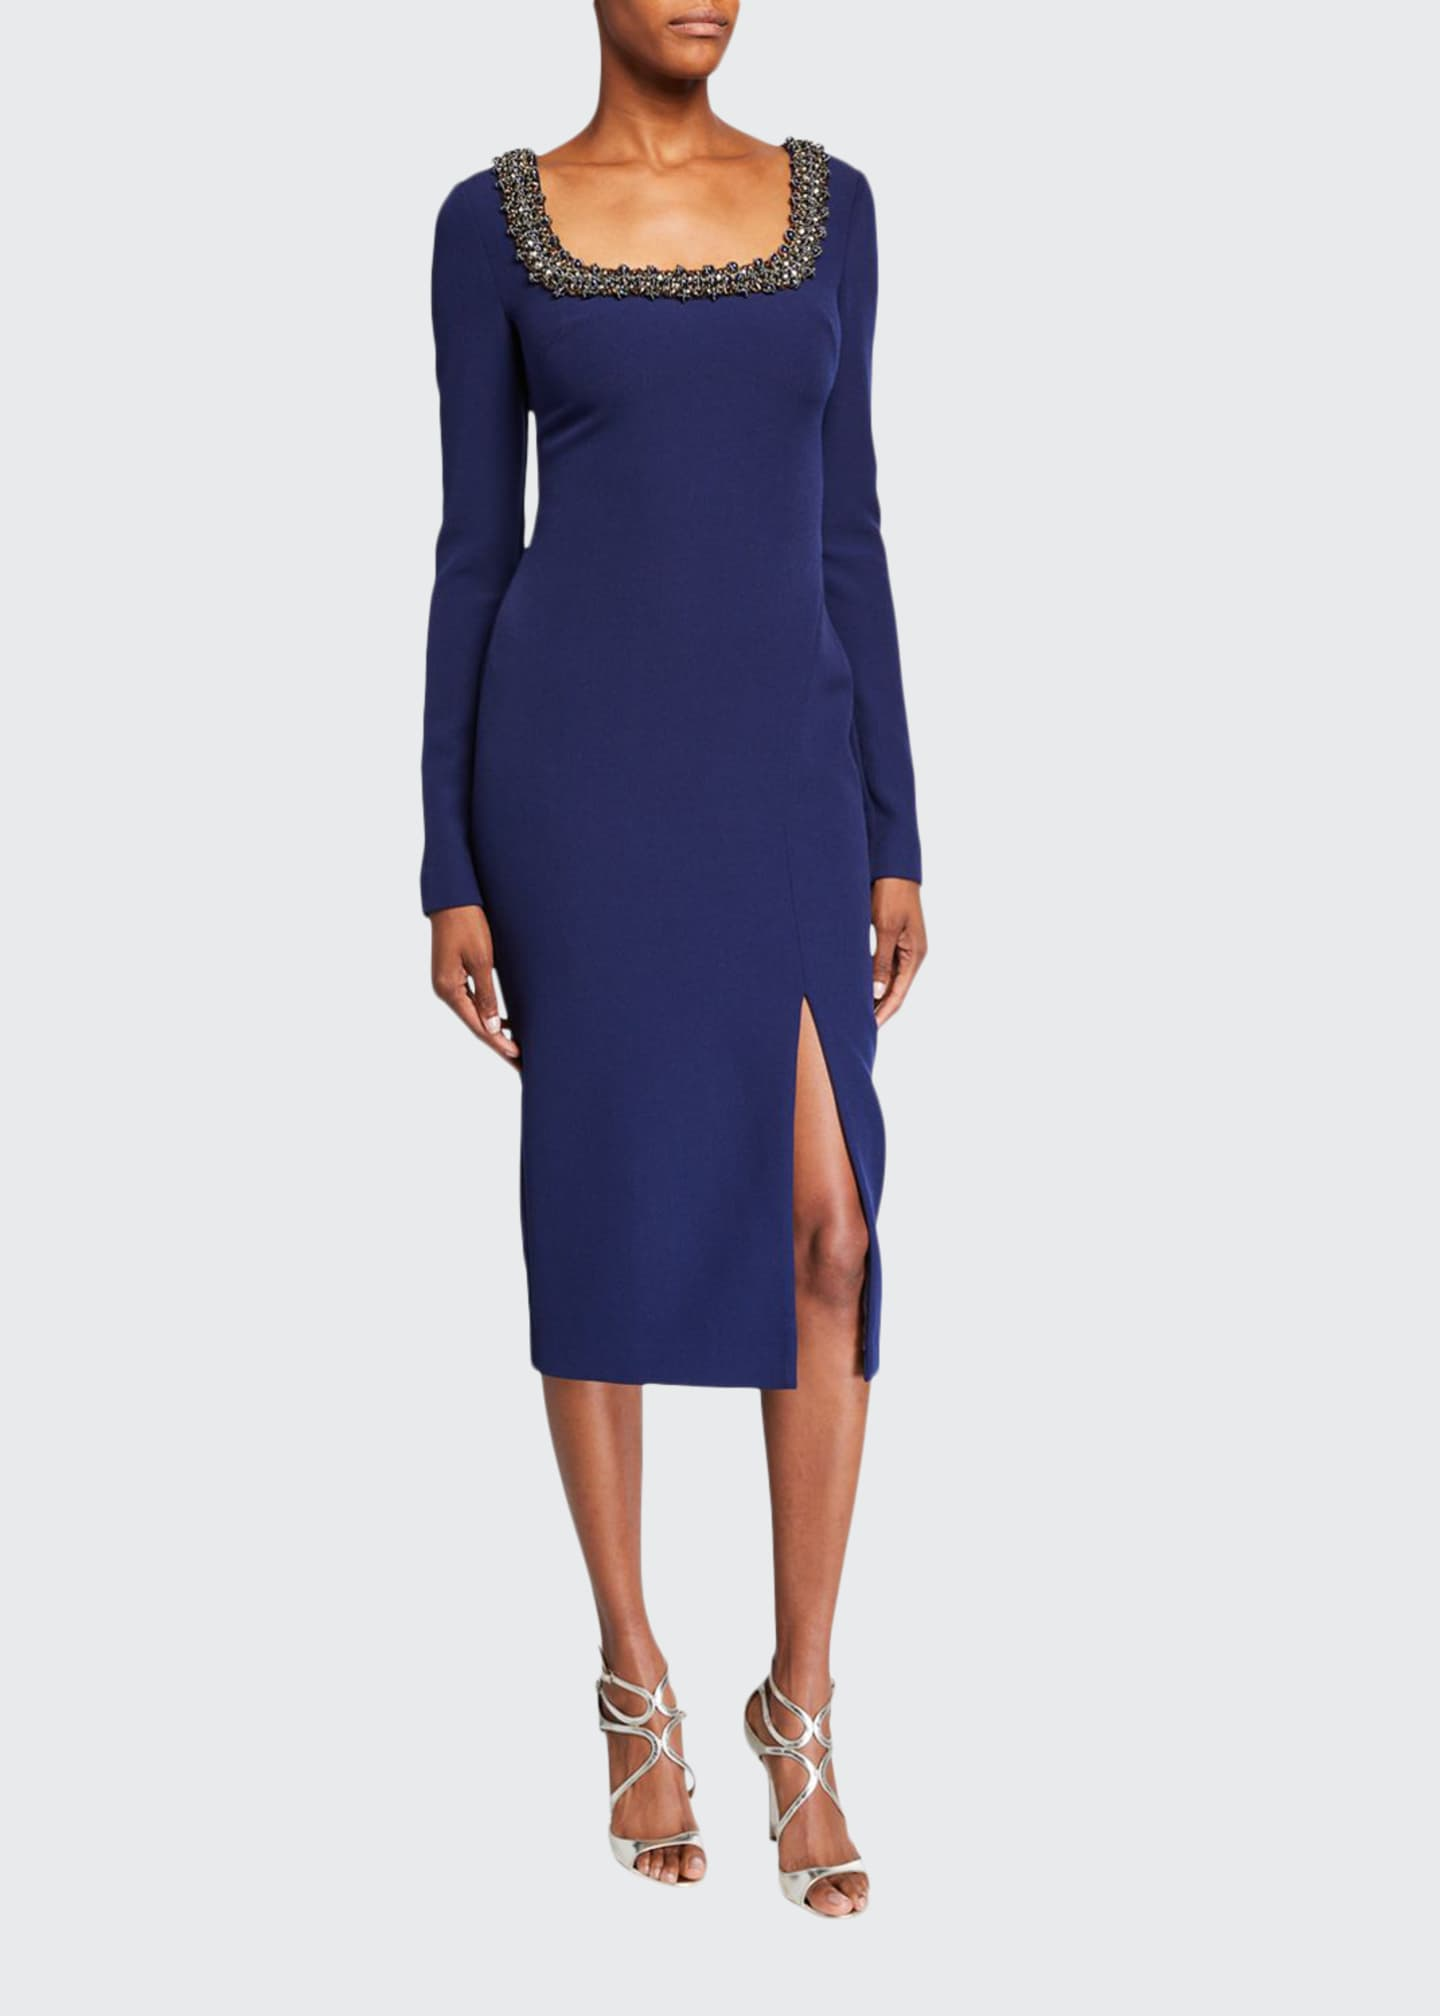 Badgley Mischka Collection Beaded Square-Neck Long-Sleeve Dress